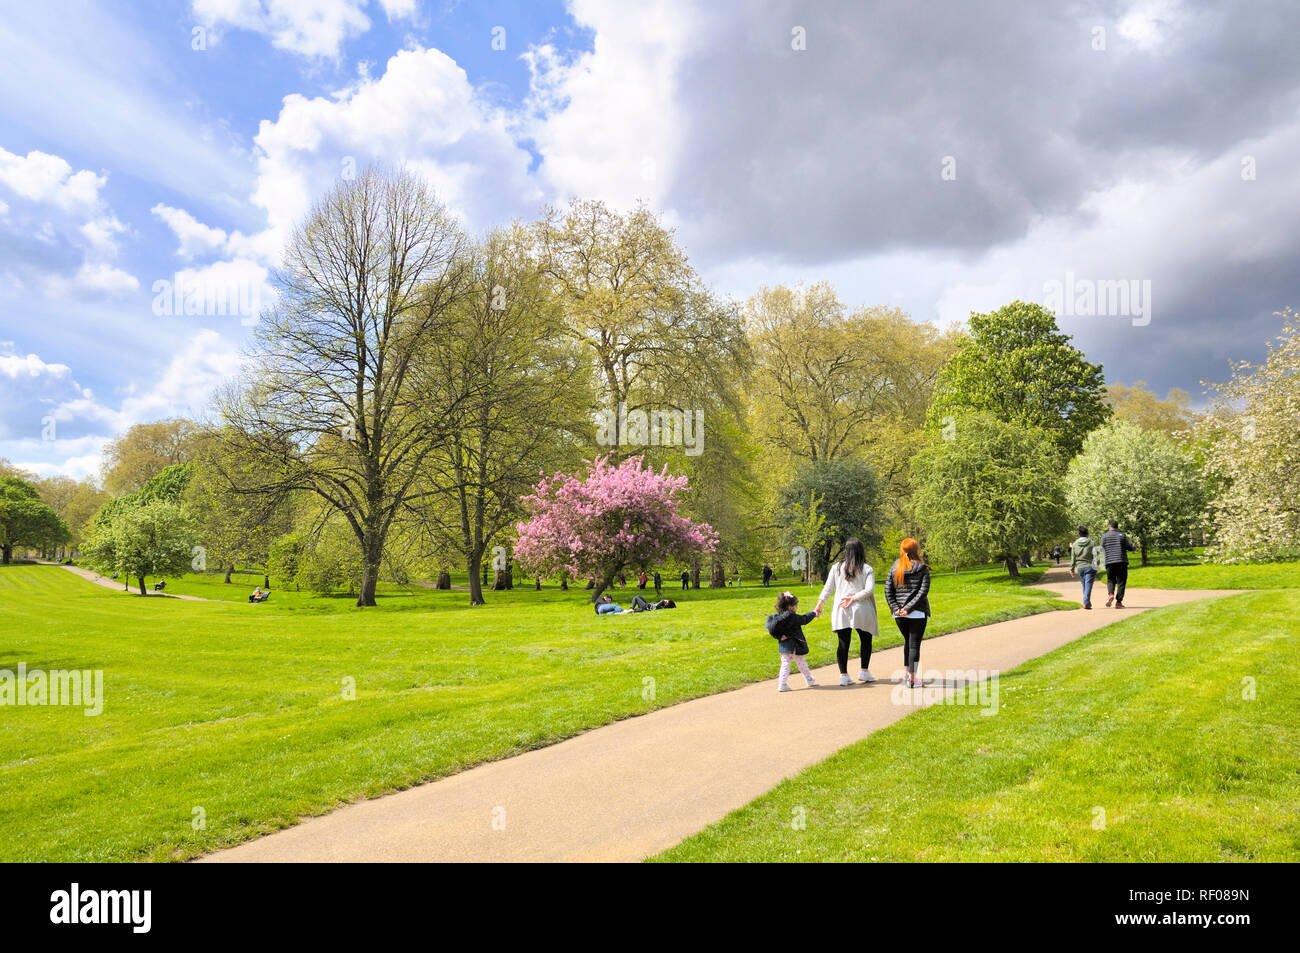 People strolling in Green Park on a fine spring day, London, England, UK - Stock Image